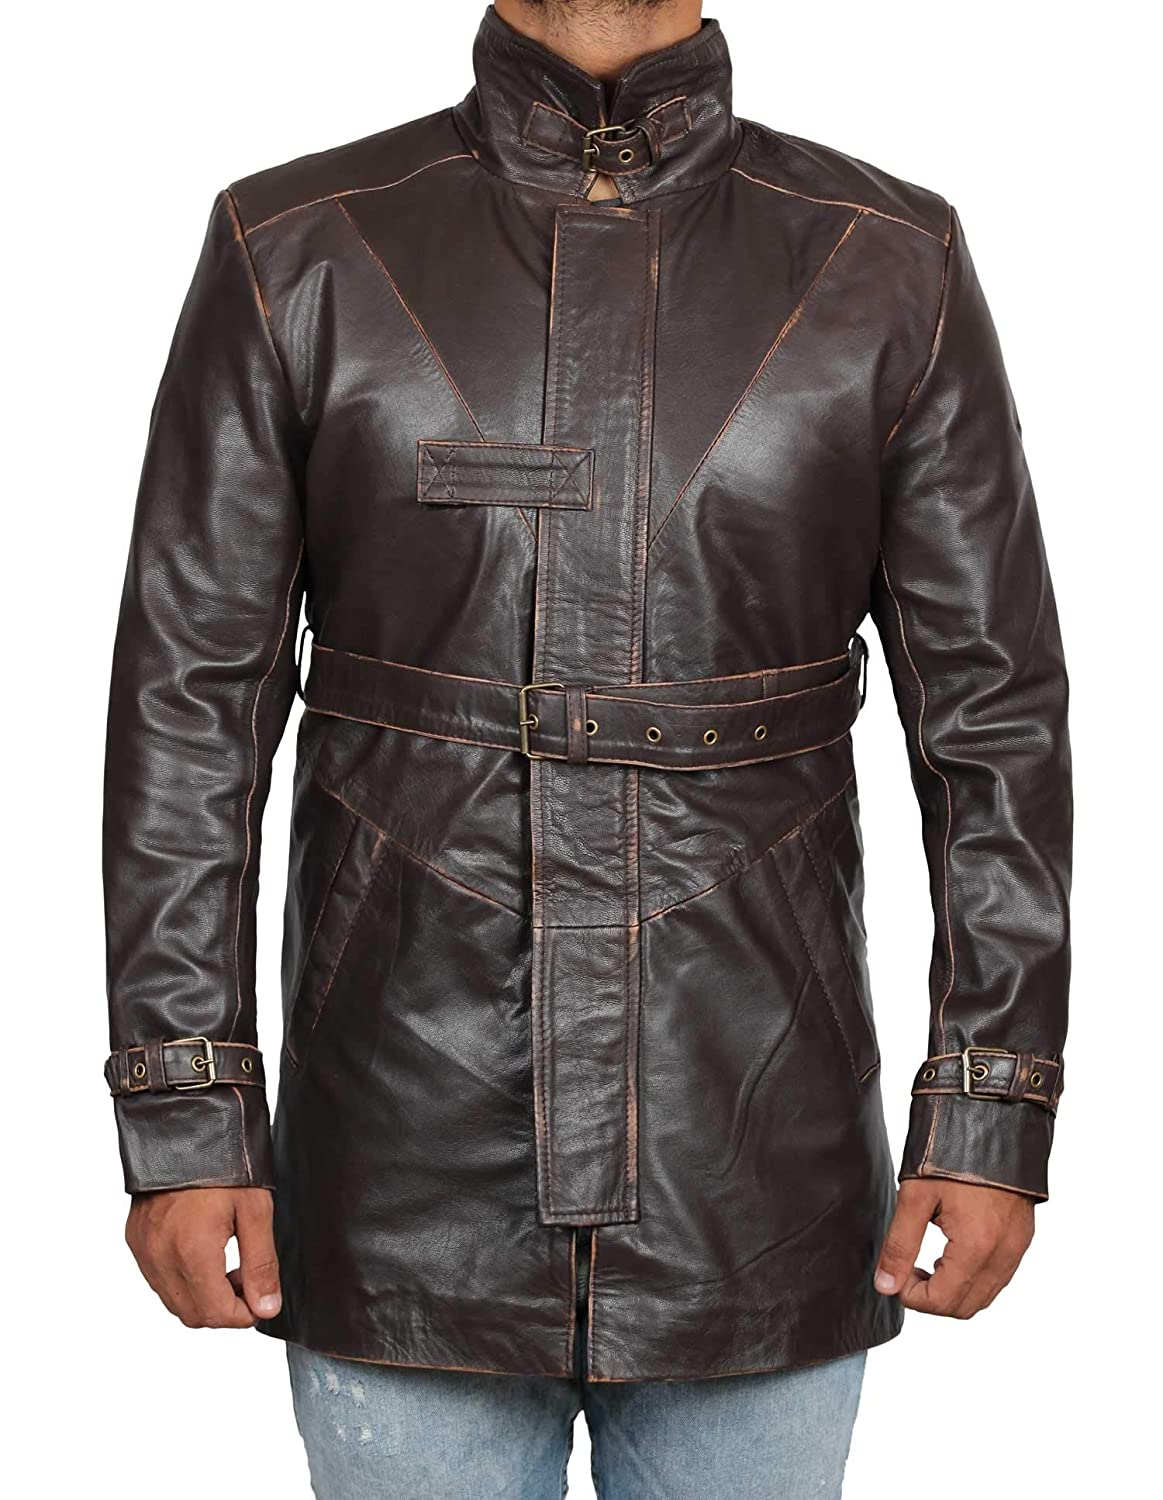 2b223a3582a7 Blingsoul Mens Leather Coat - Black and Brown Shearling Coats for Men at Amazon  Men's Clothing store: Athletic Apparel